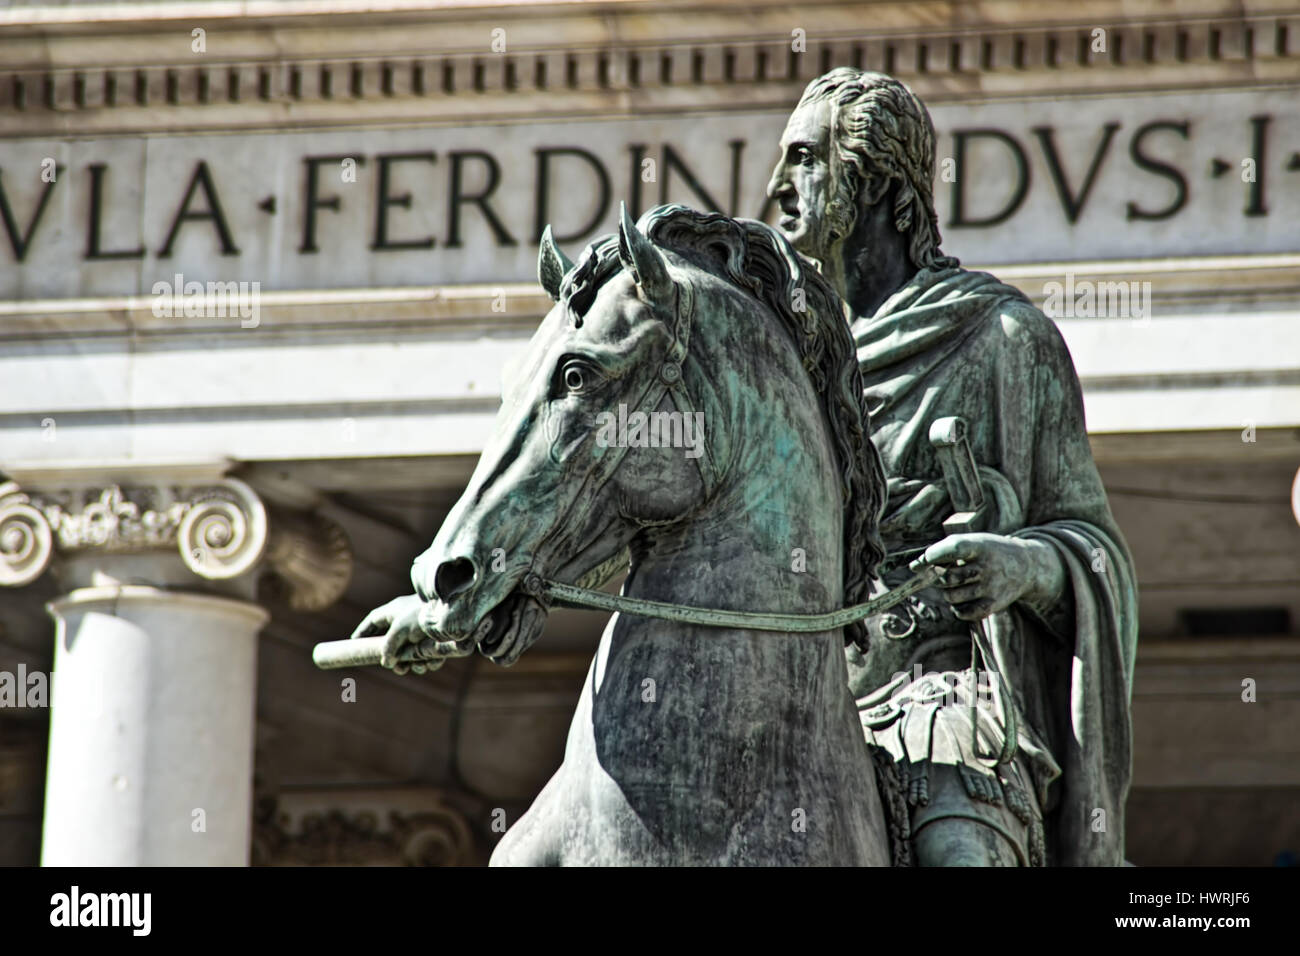 A statue in downtown Naples, Italy. - Stock Image